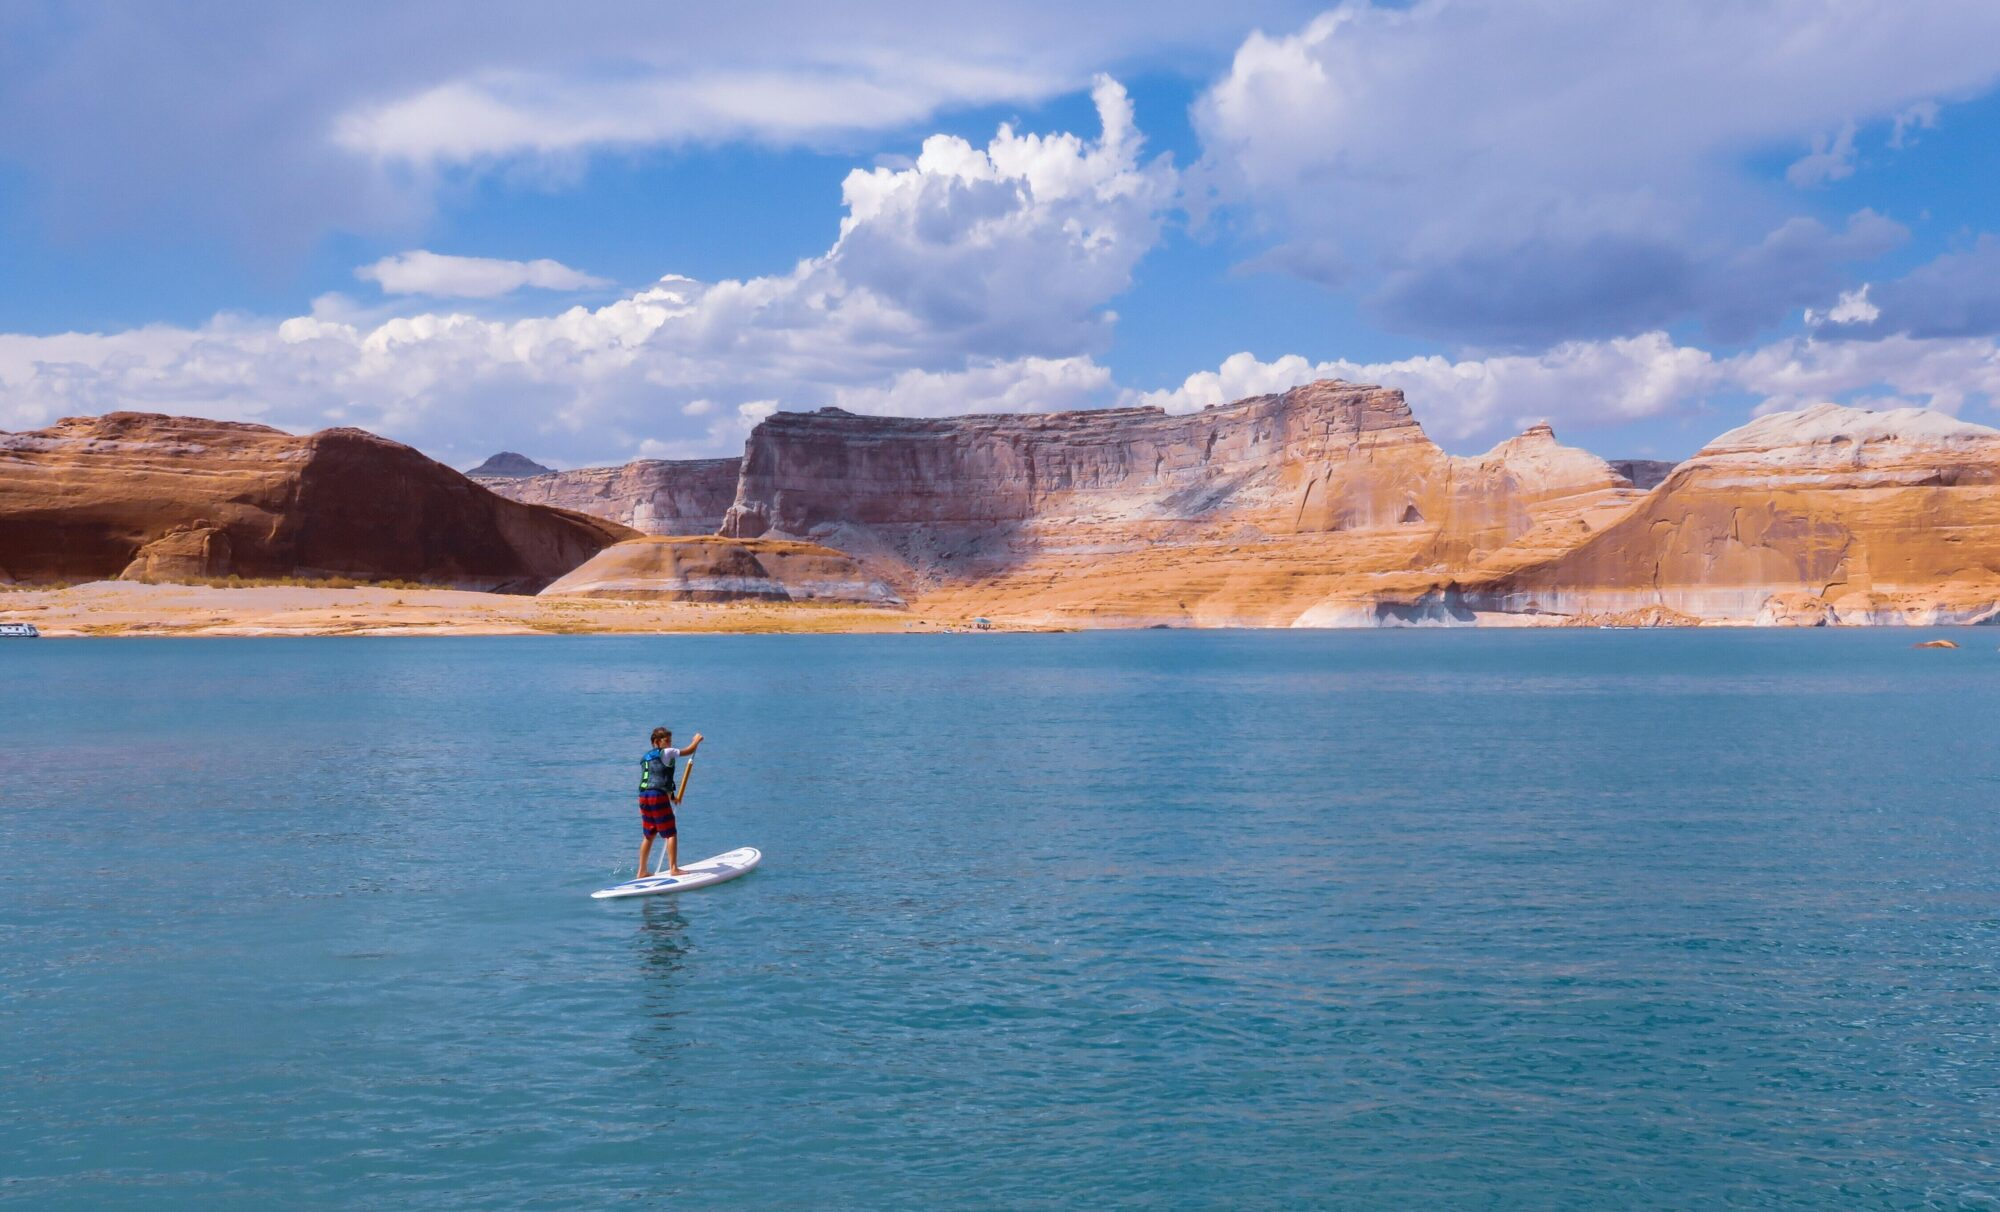 A young man paddleboarding on Lake powell with high cliffs on the far shore